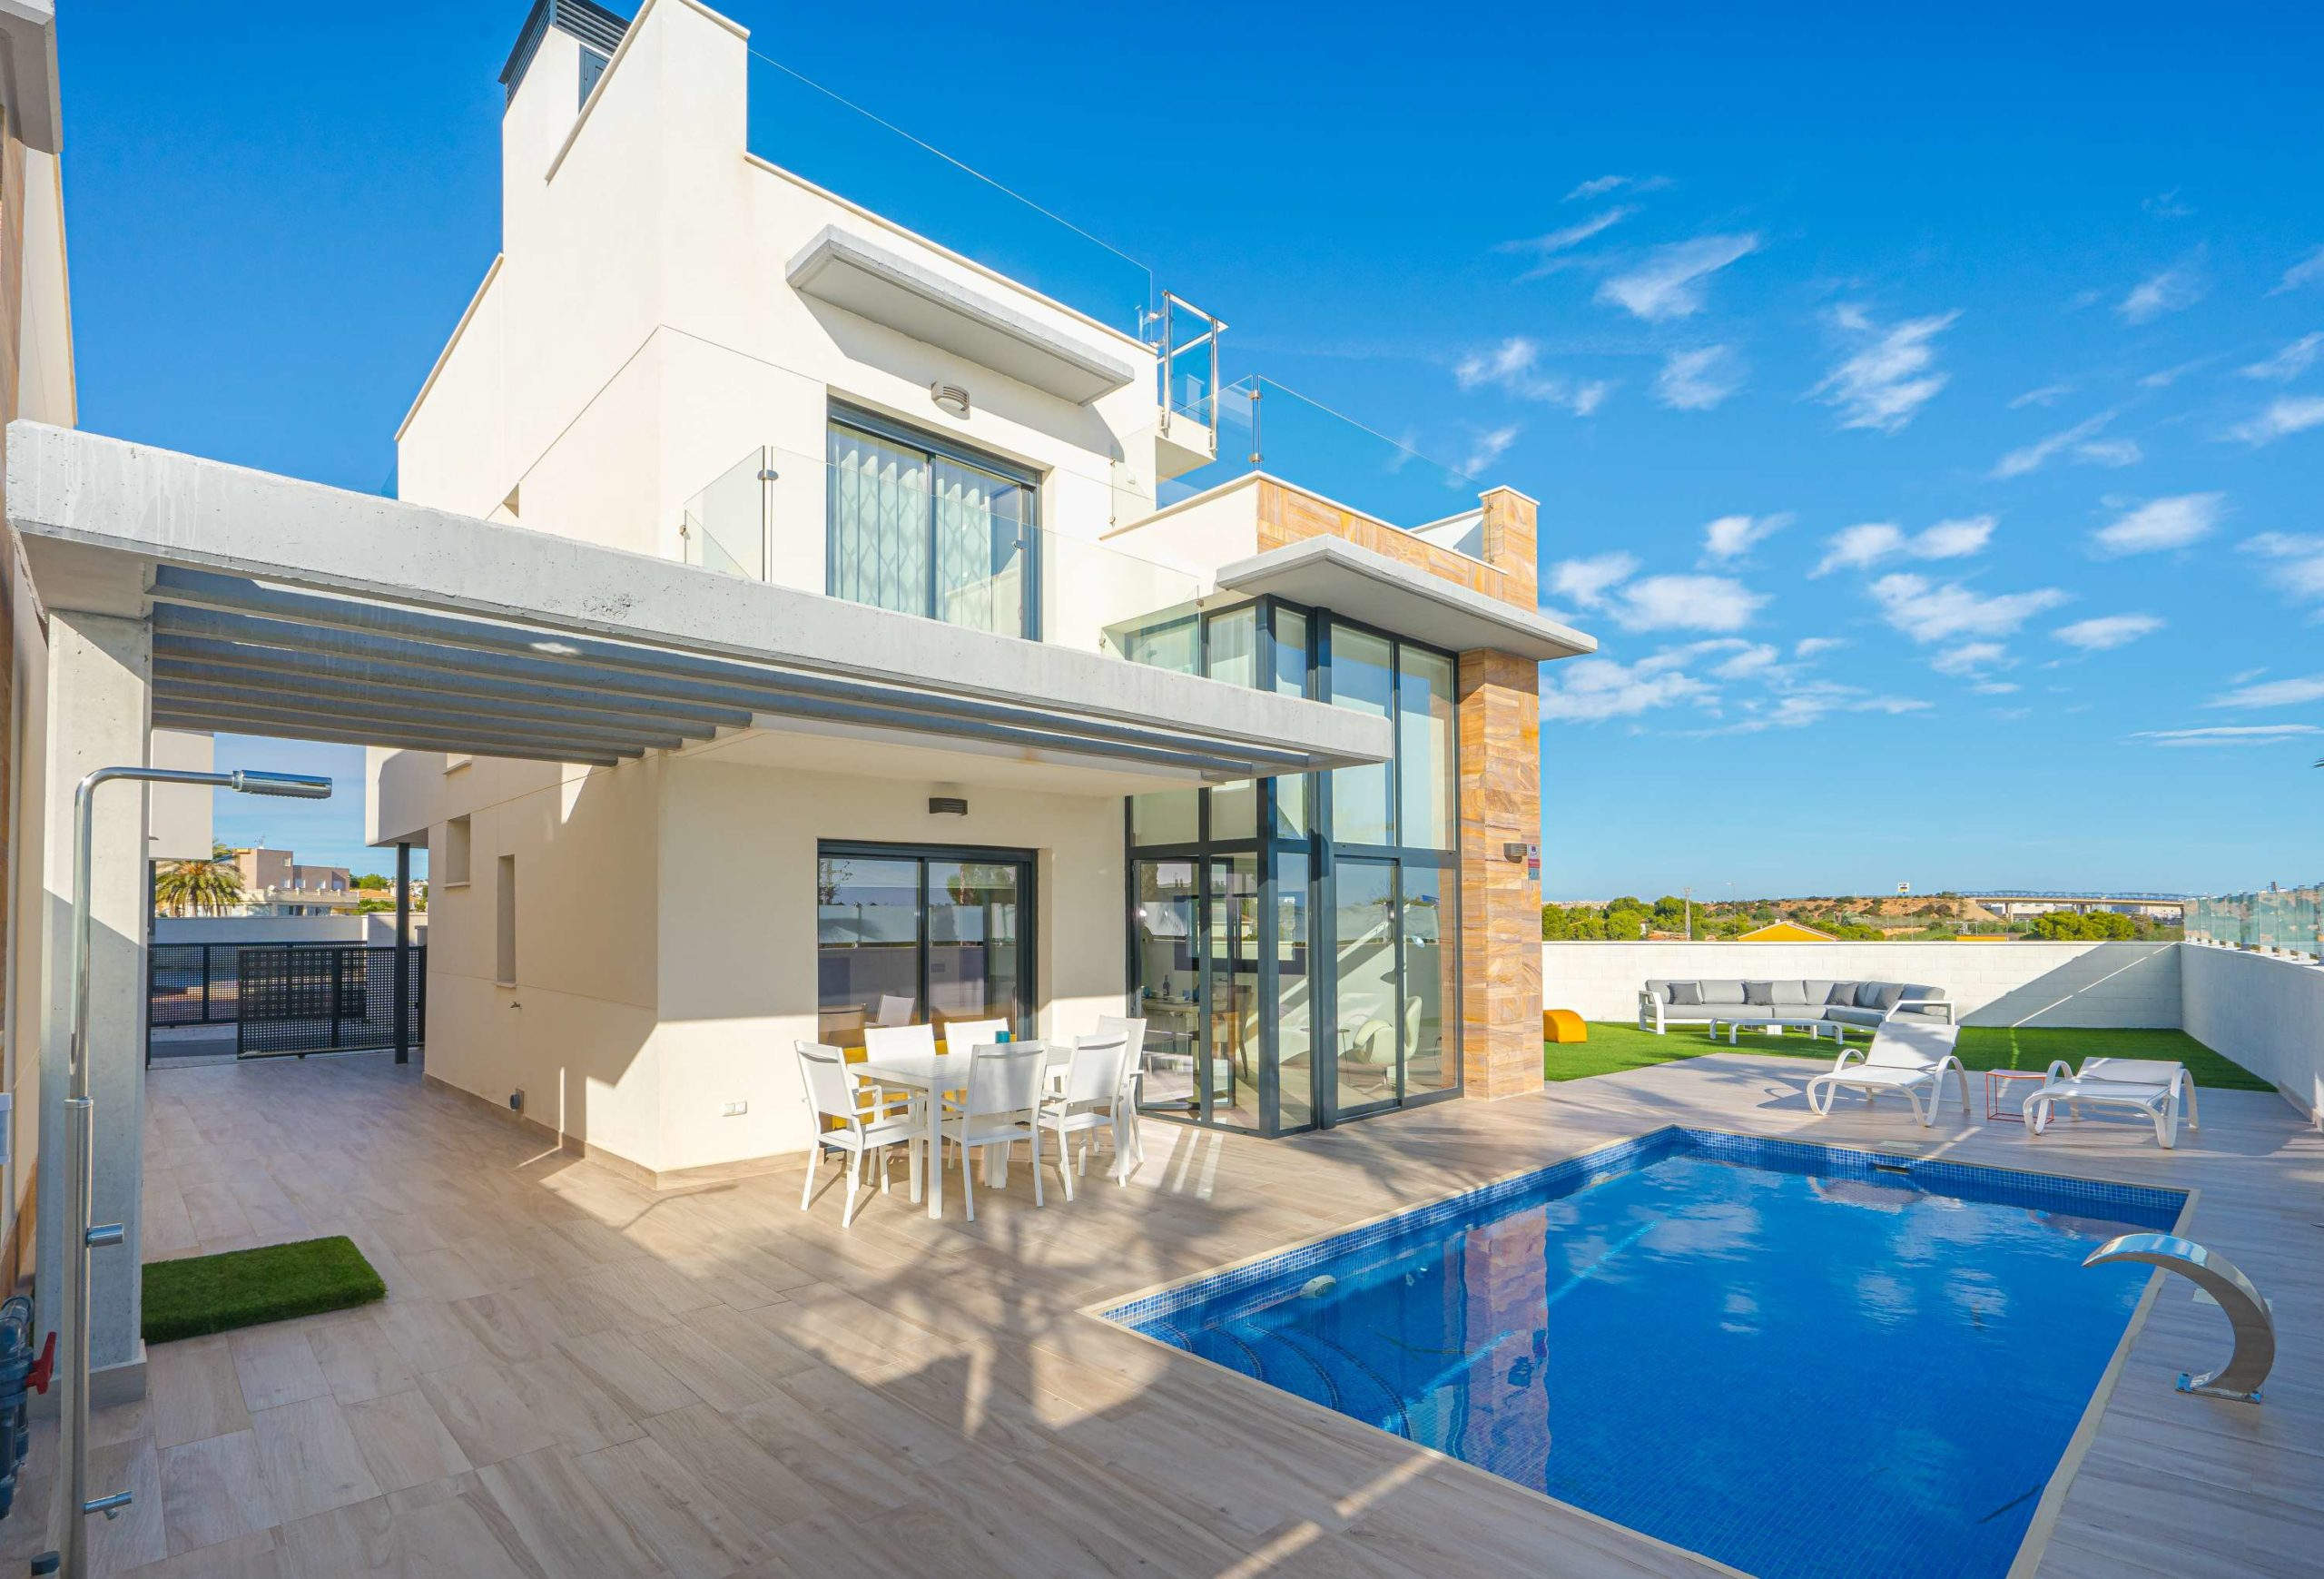 Stunning detached 4 bedroom villa with private pool and basement for sale in La Zenia